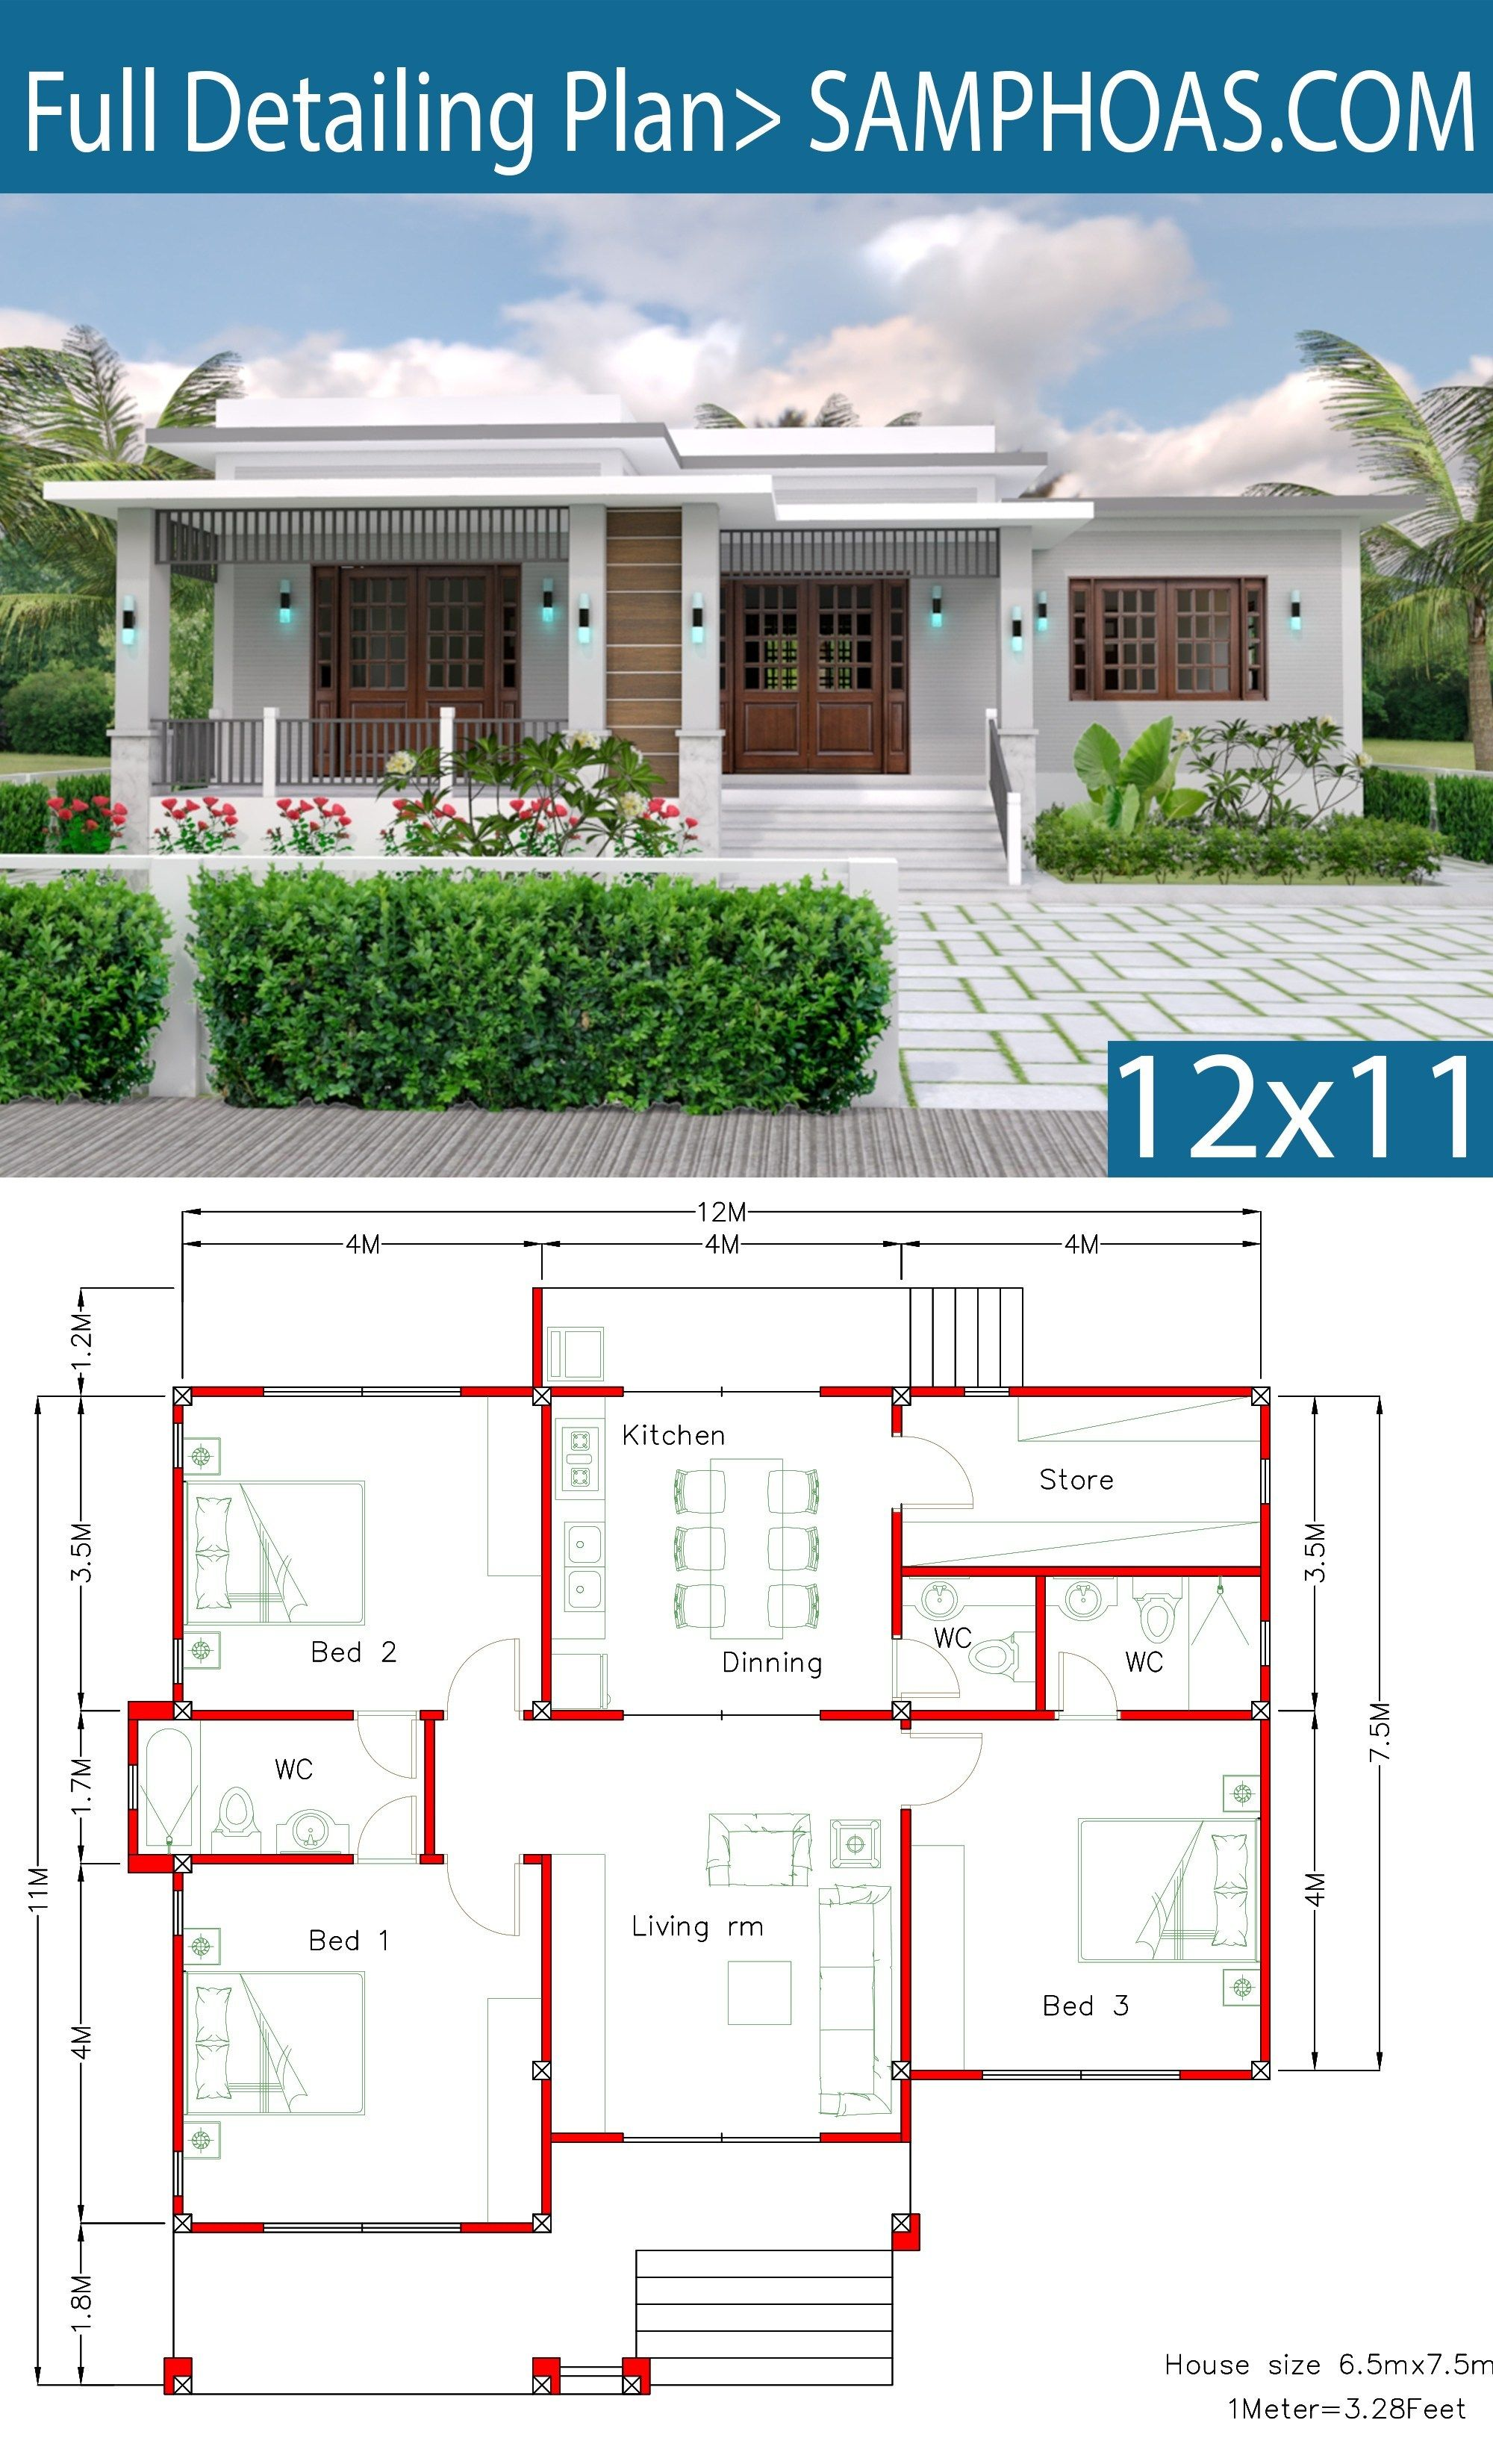 House Design With Full Plan 12x11m 3 Bedrooms Samphoas Com Architectural House Plans House Plan Gallery My House Plans